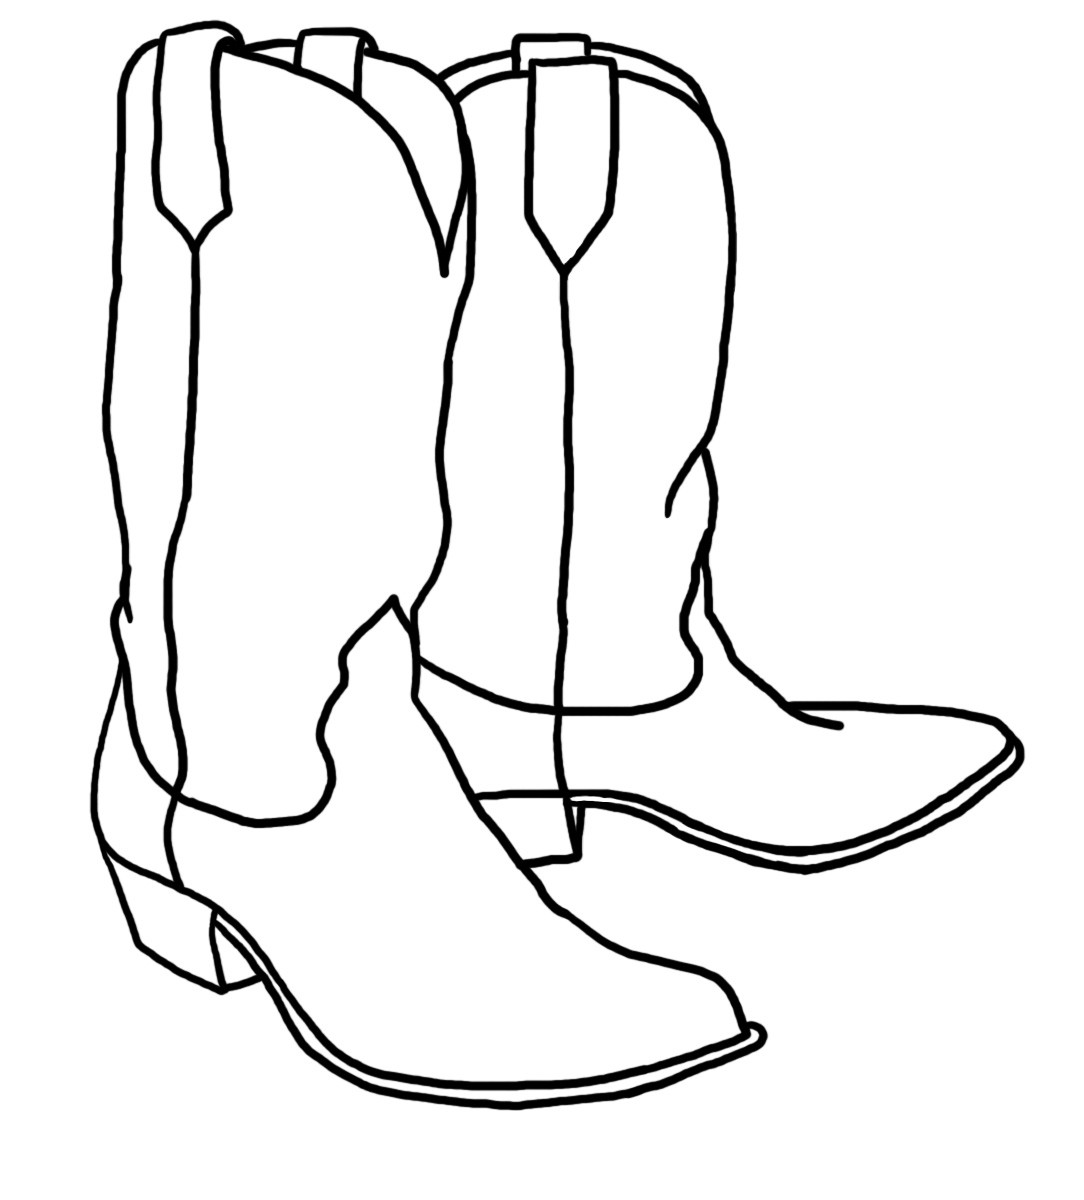 Cowgirl Boots Sketch at PaintingValley.com.